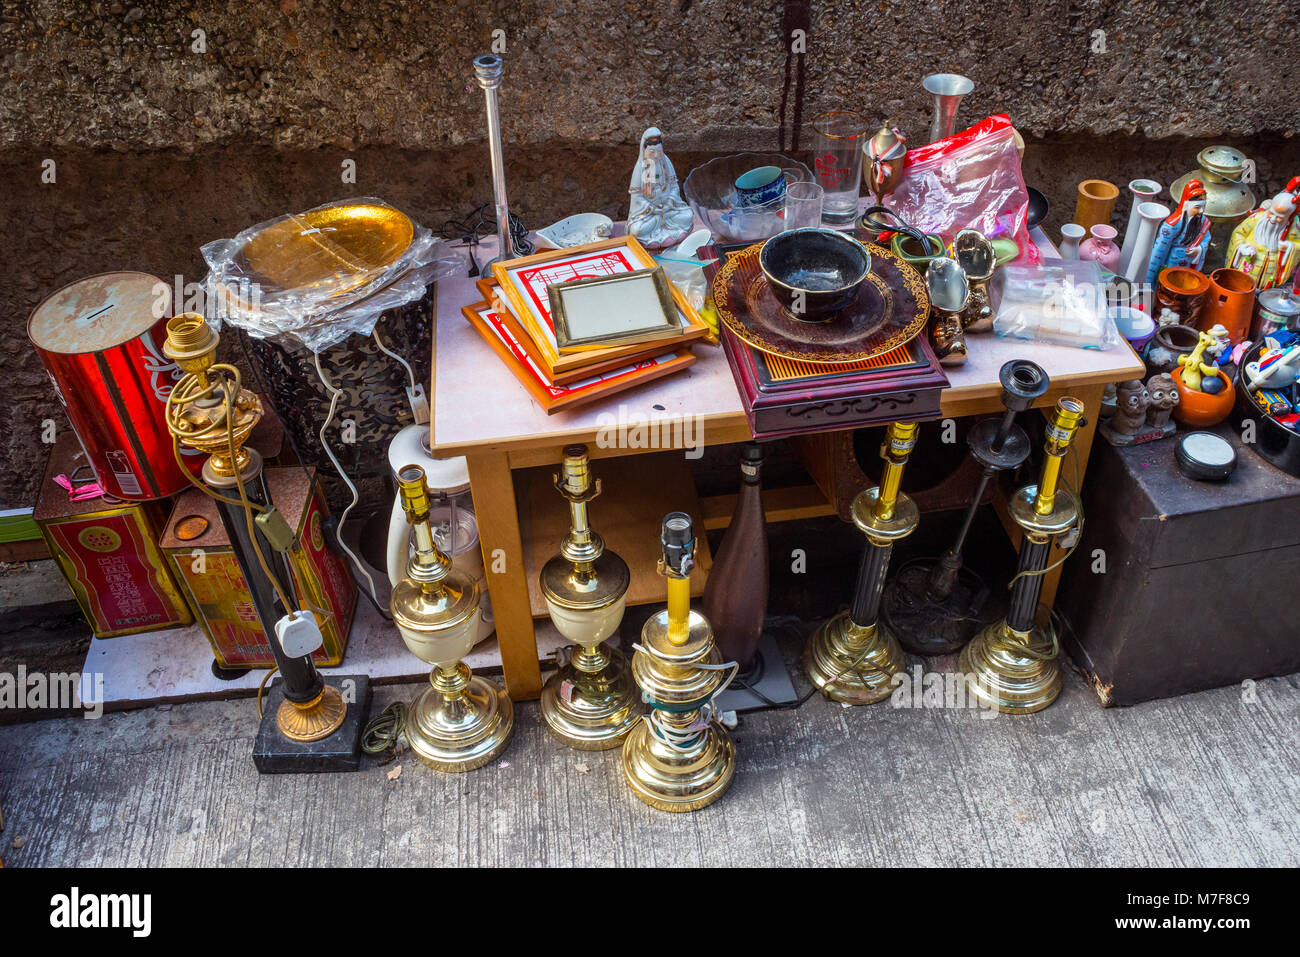 Lamps and Collectables, Cat Street Market, Hong Kong - Stock Image